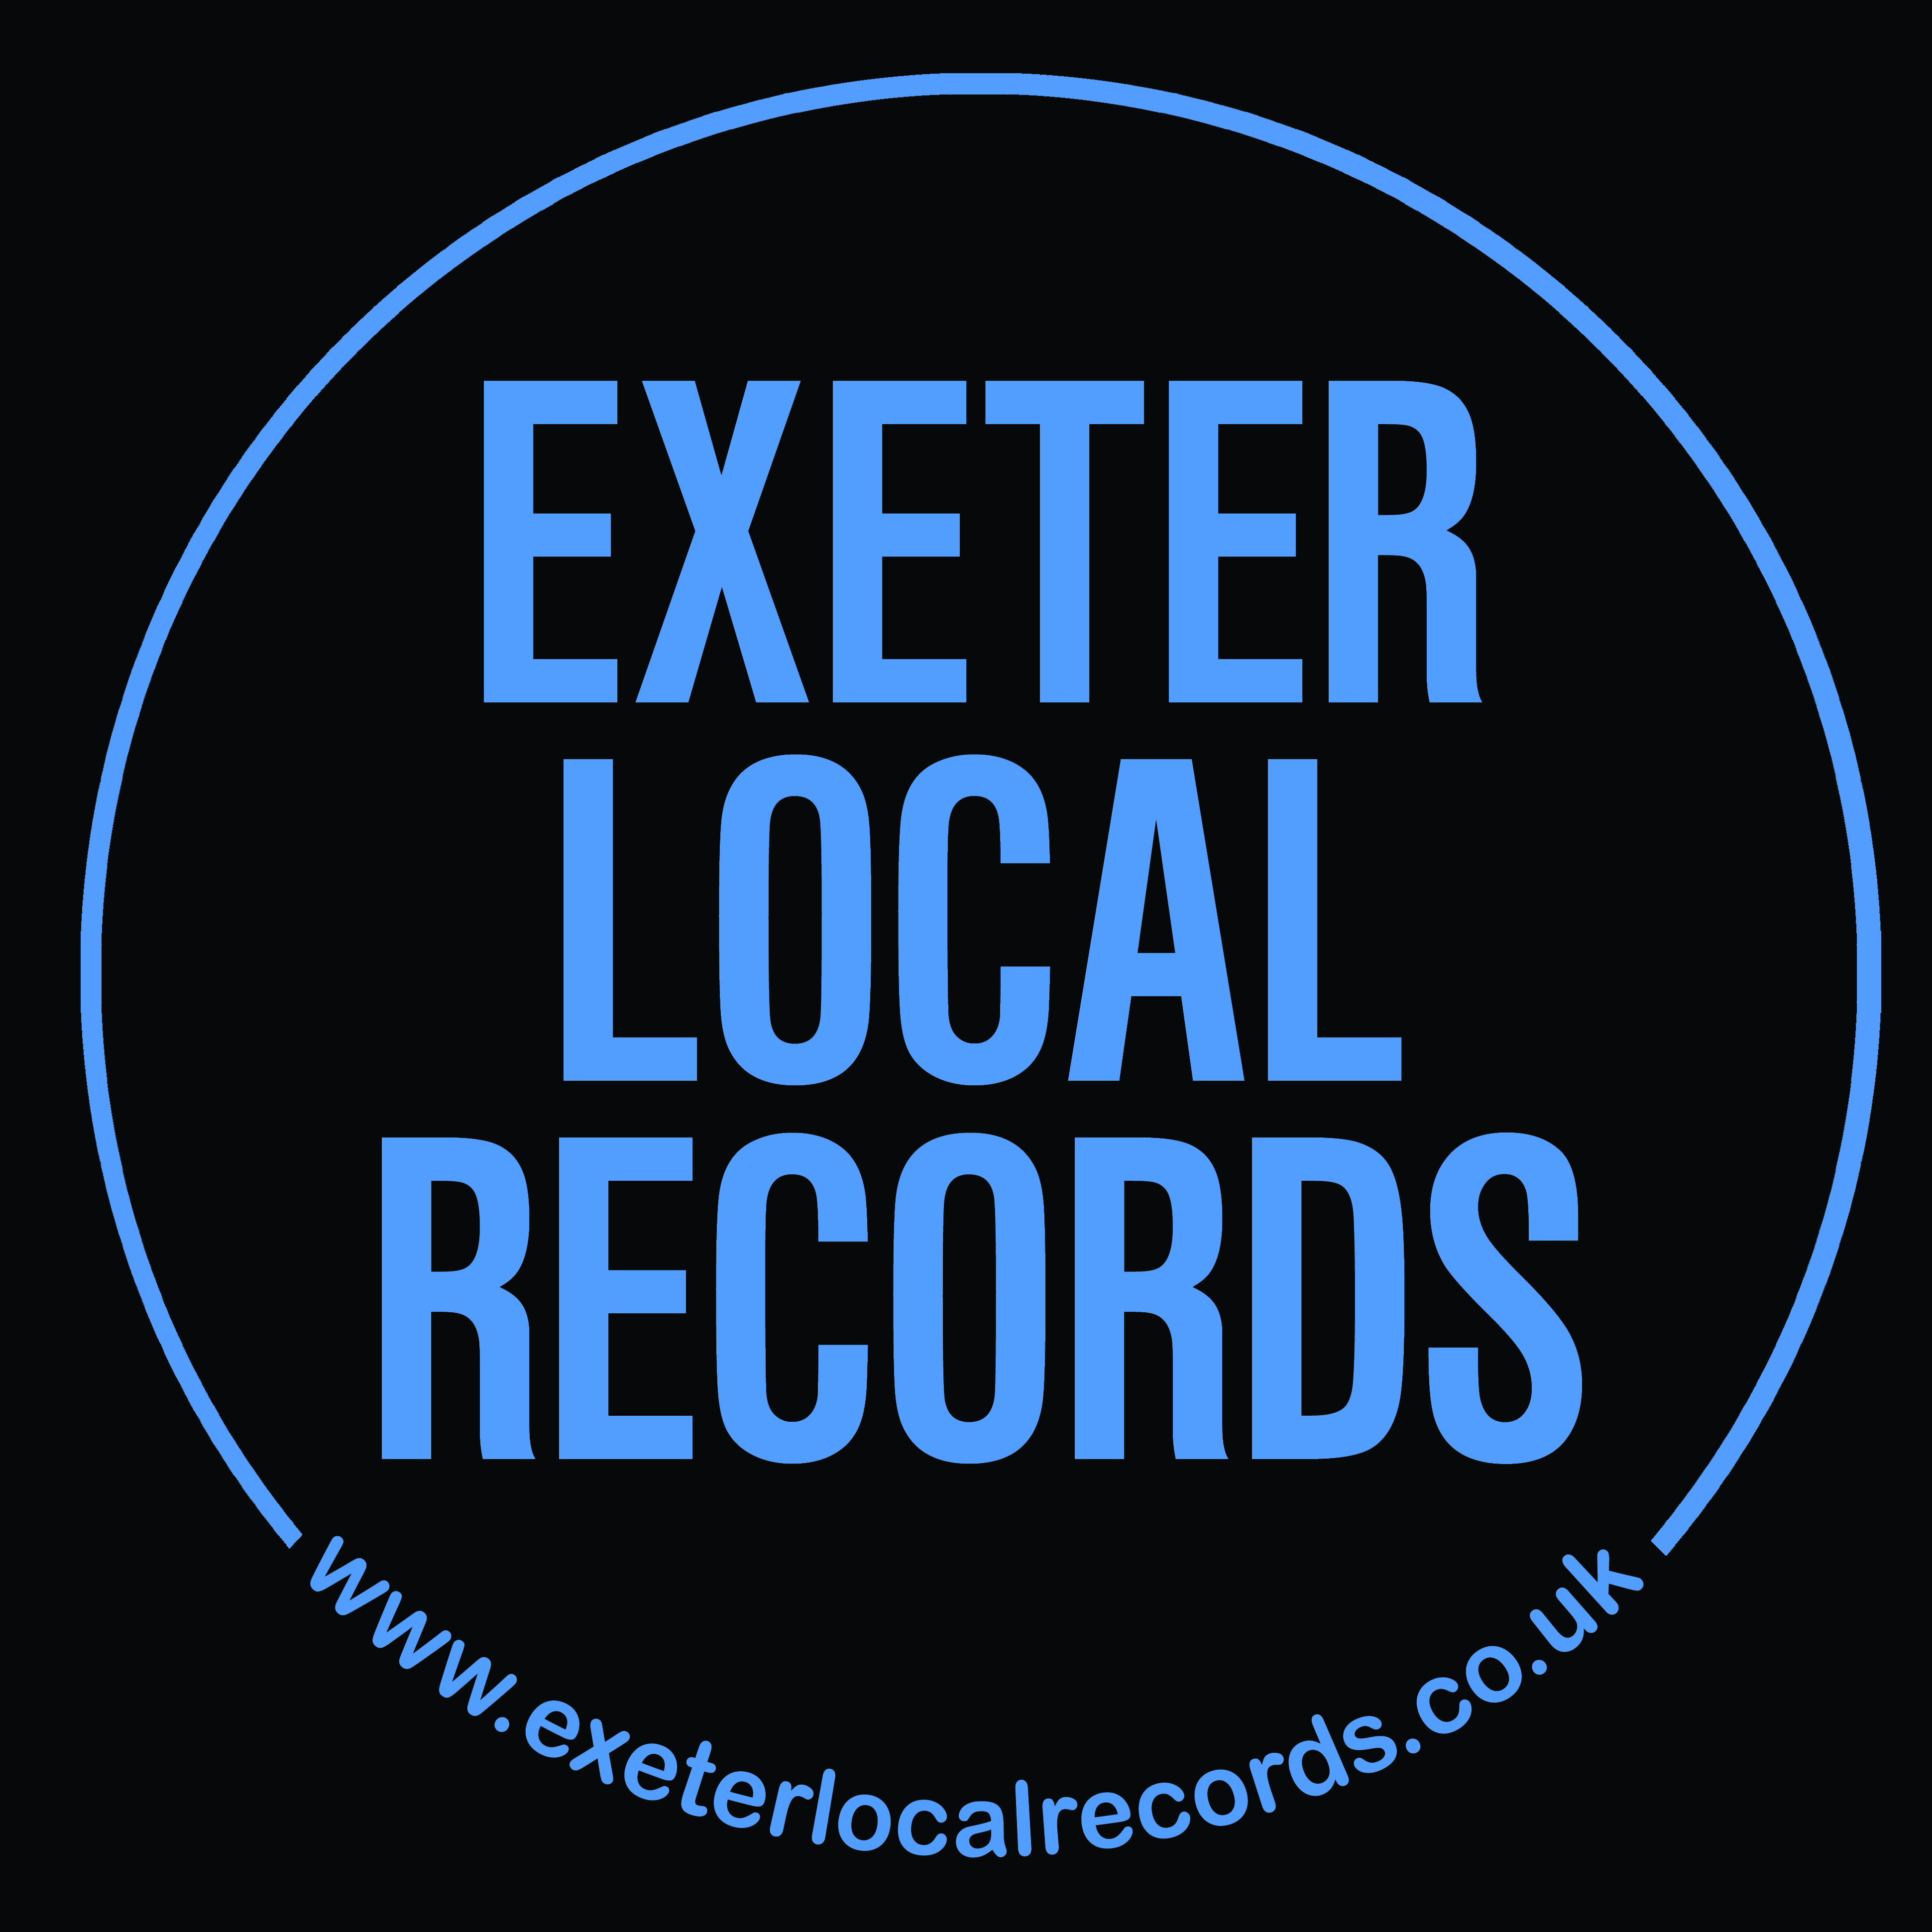 Exeter Local Records